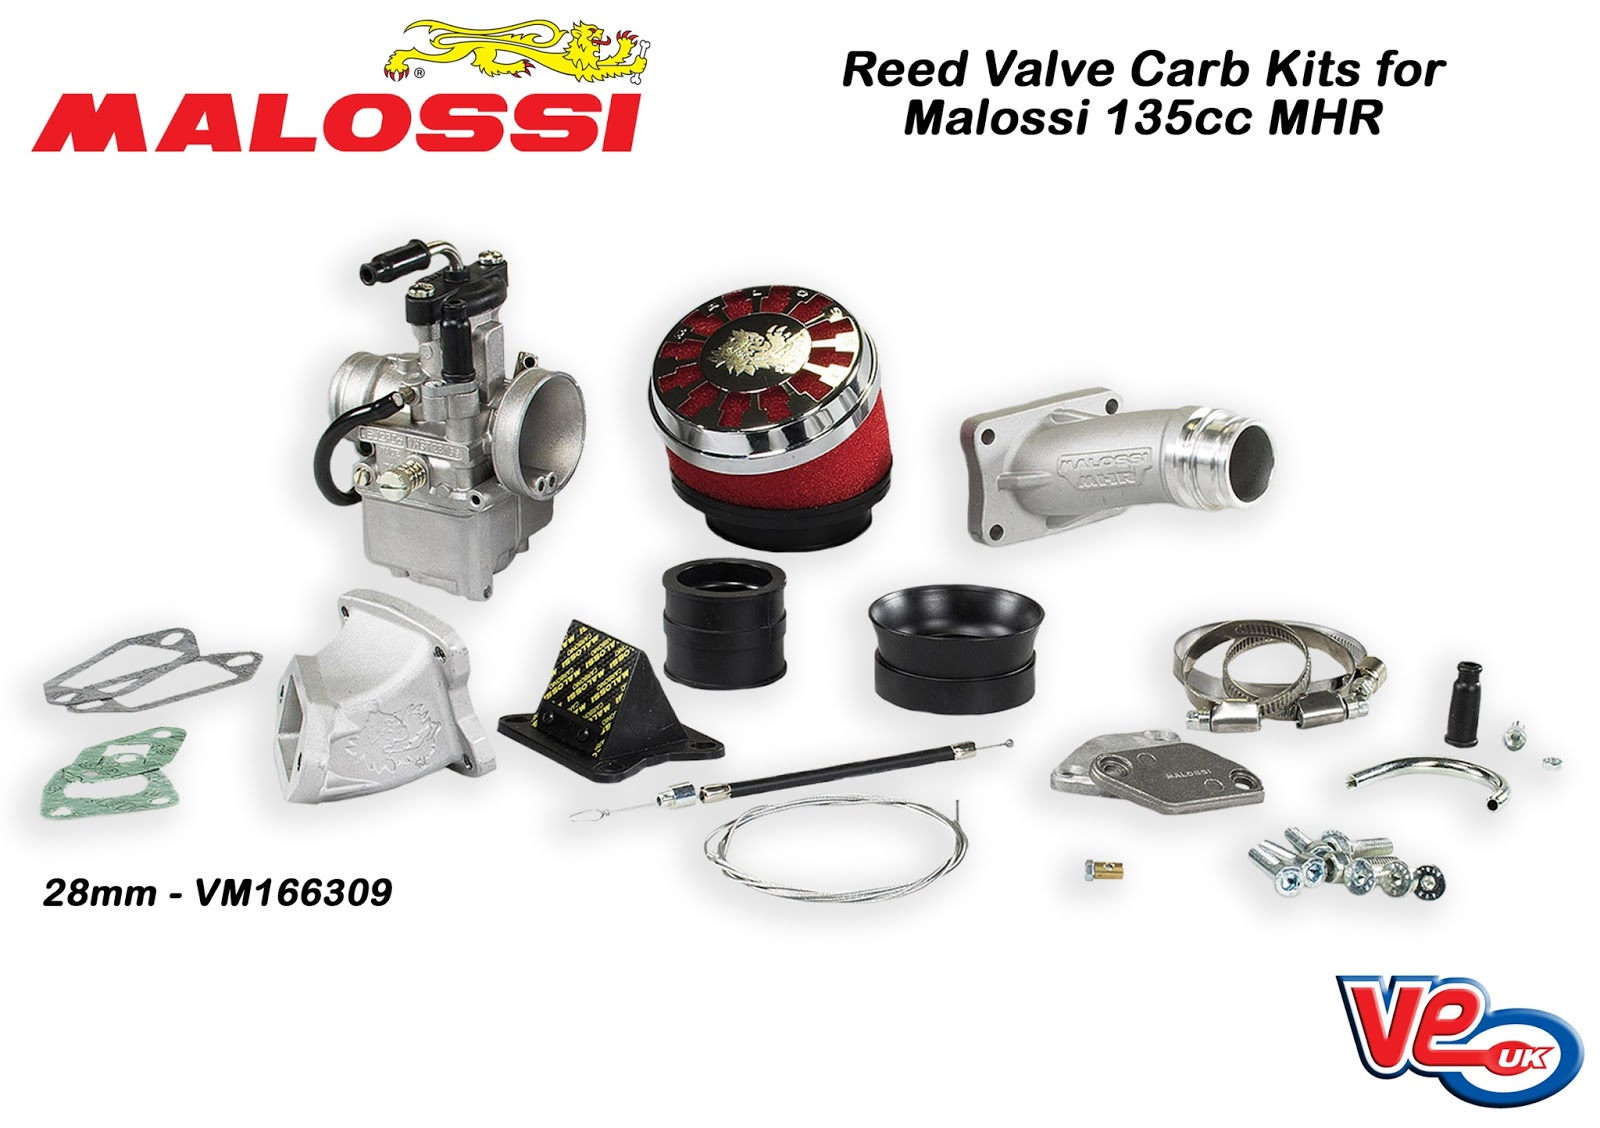 Malossi Reed Valve Carb Kits for 135 MHR